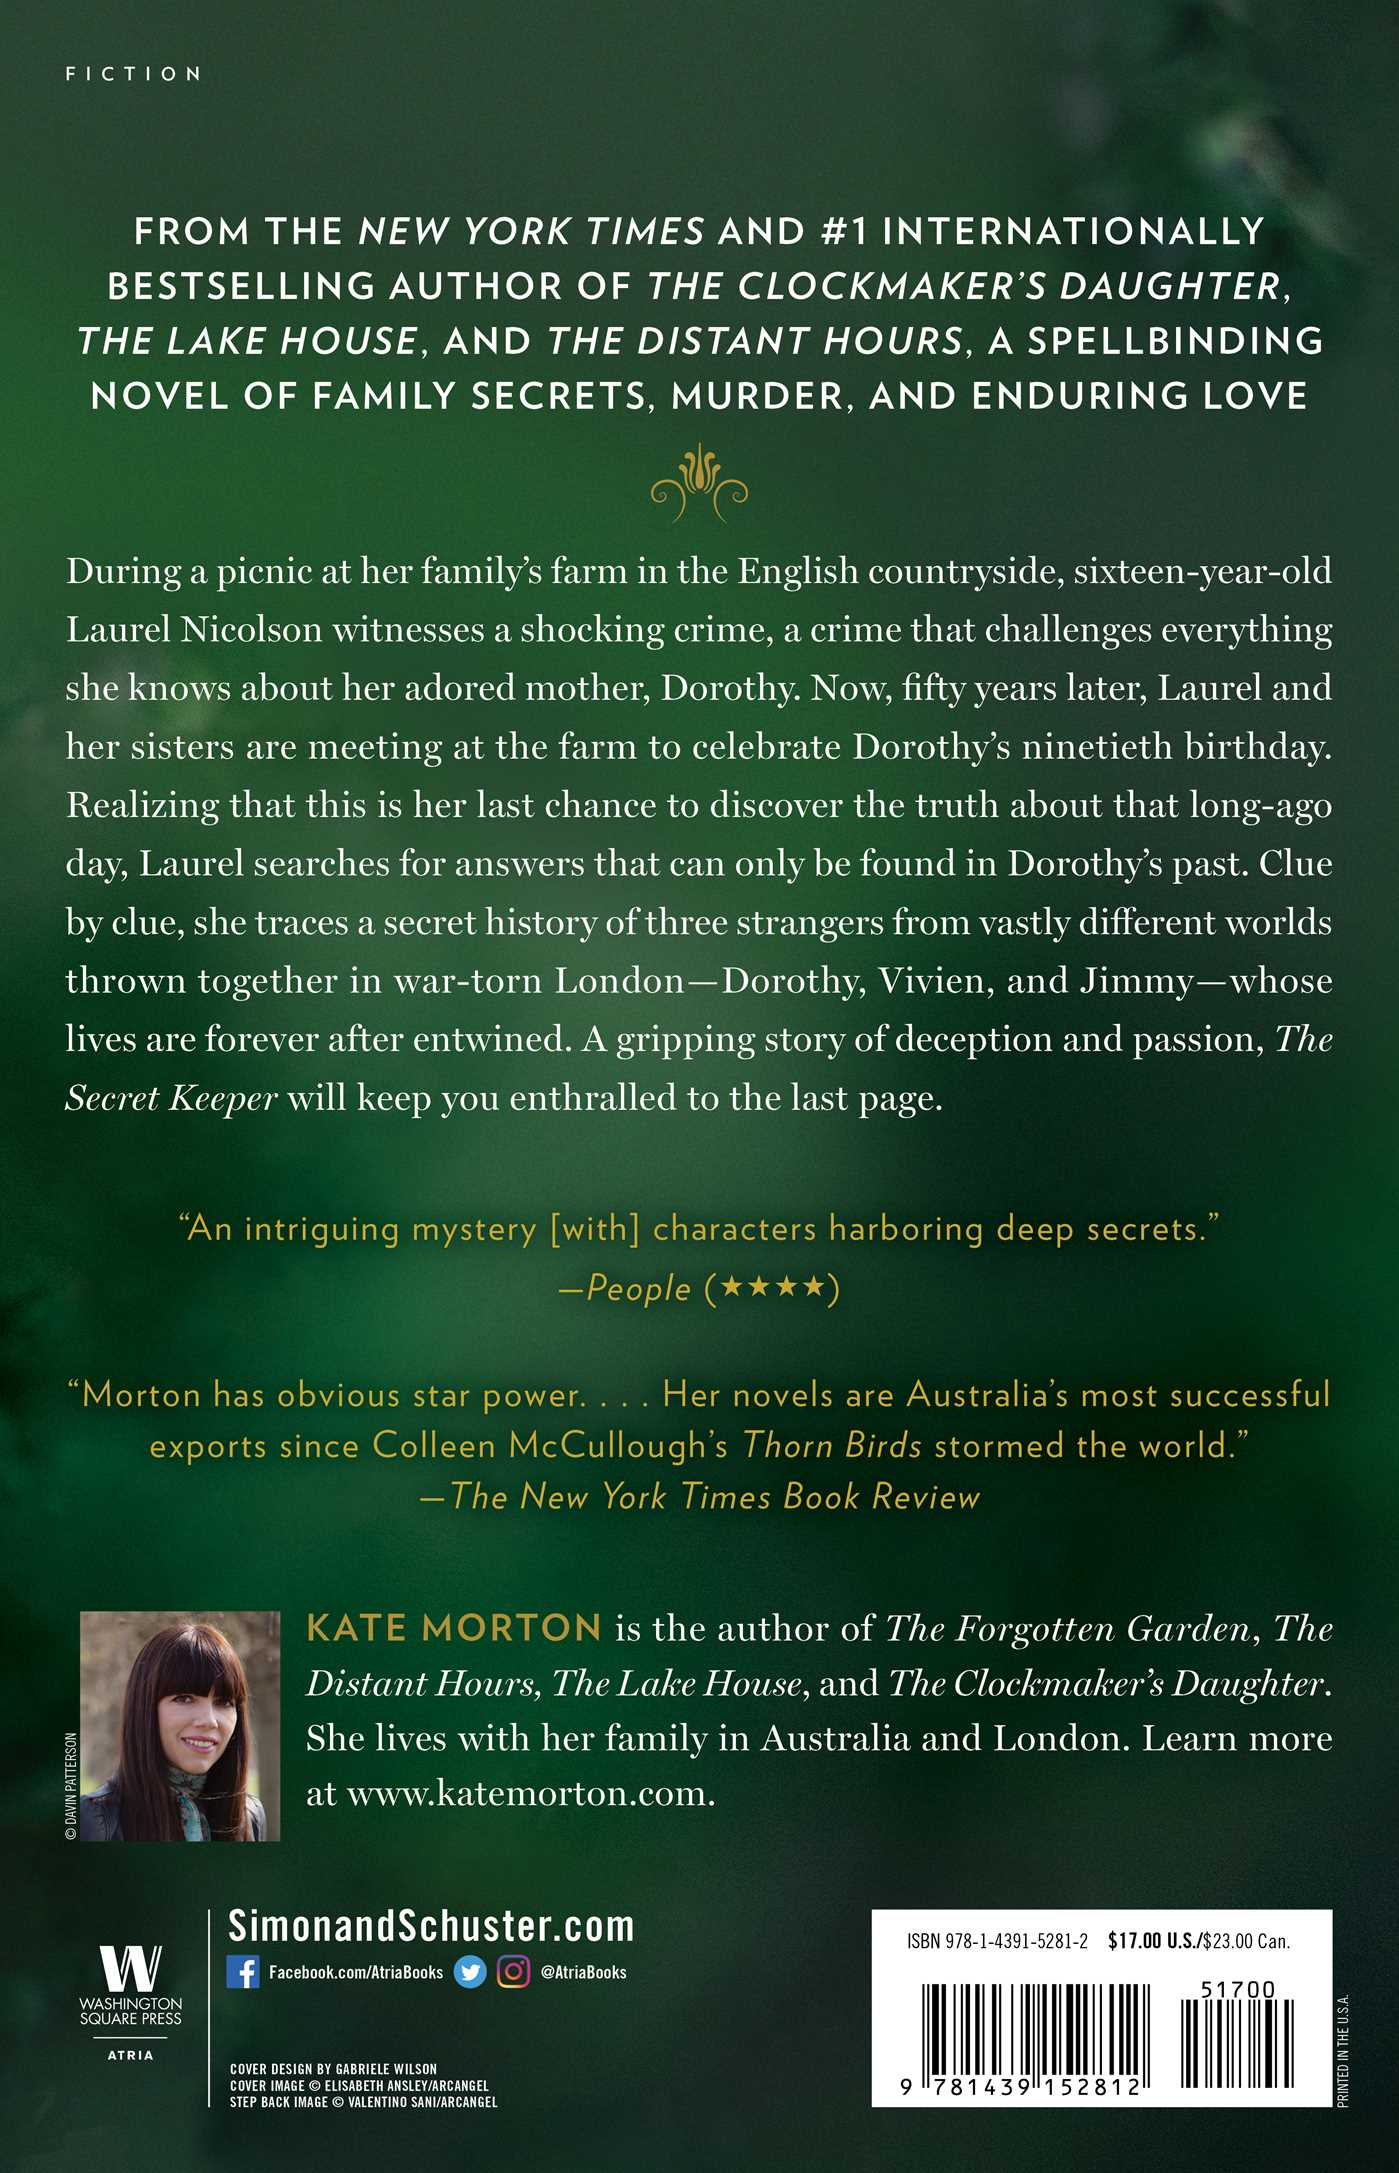 the secret keeper book by kate morton official publisher page rh simonandschuster com